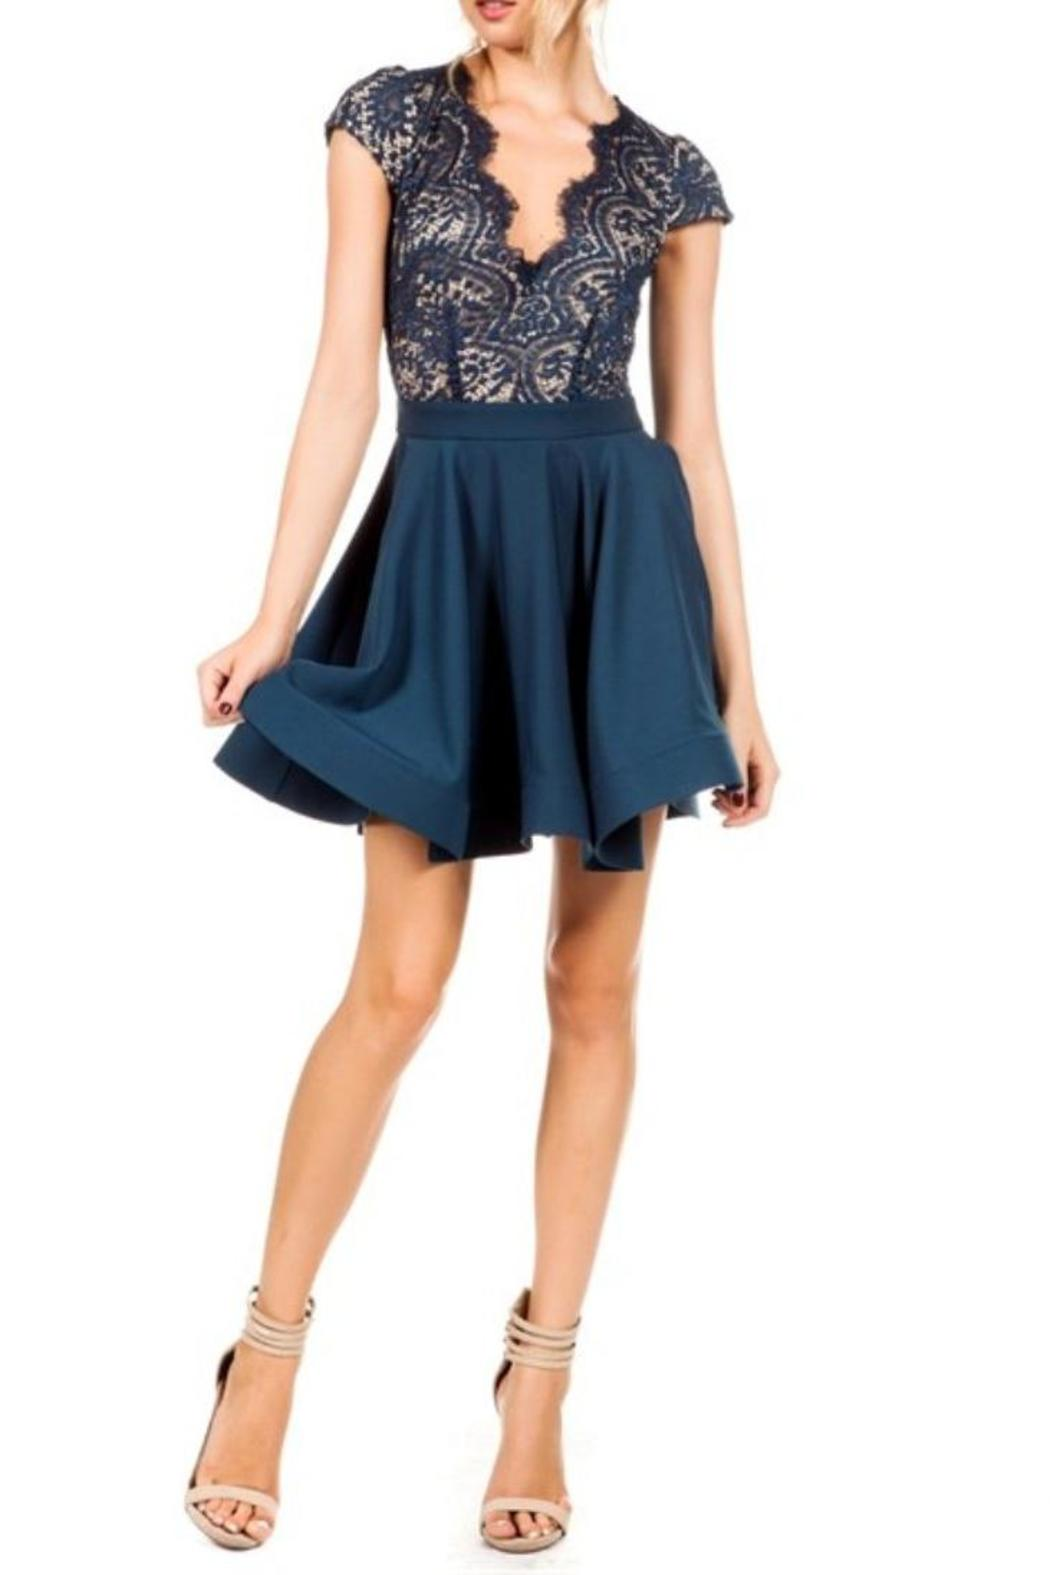 Scallop Lace Flare Dress From Laredo By Dollz Boutique